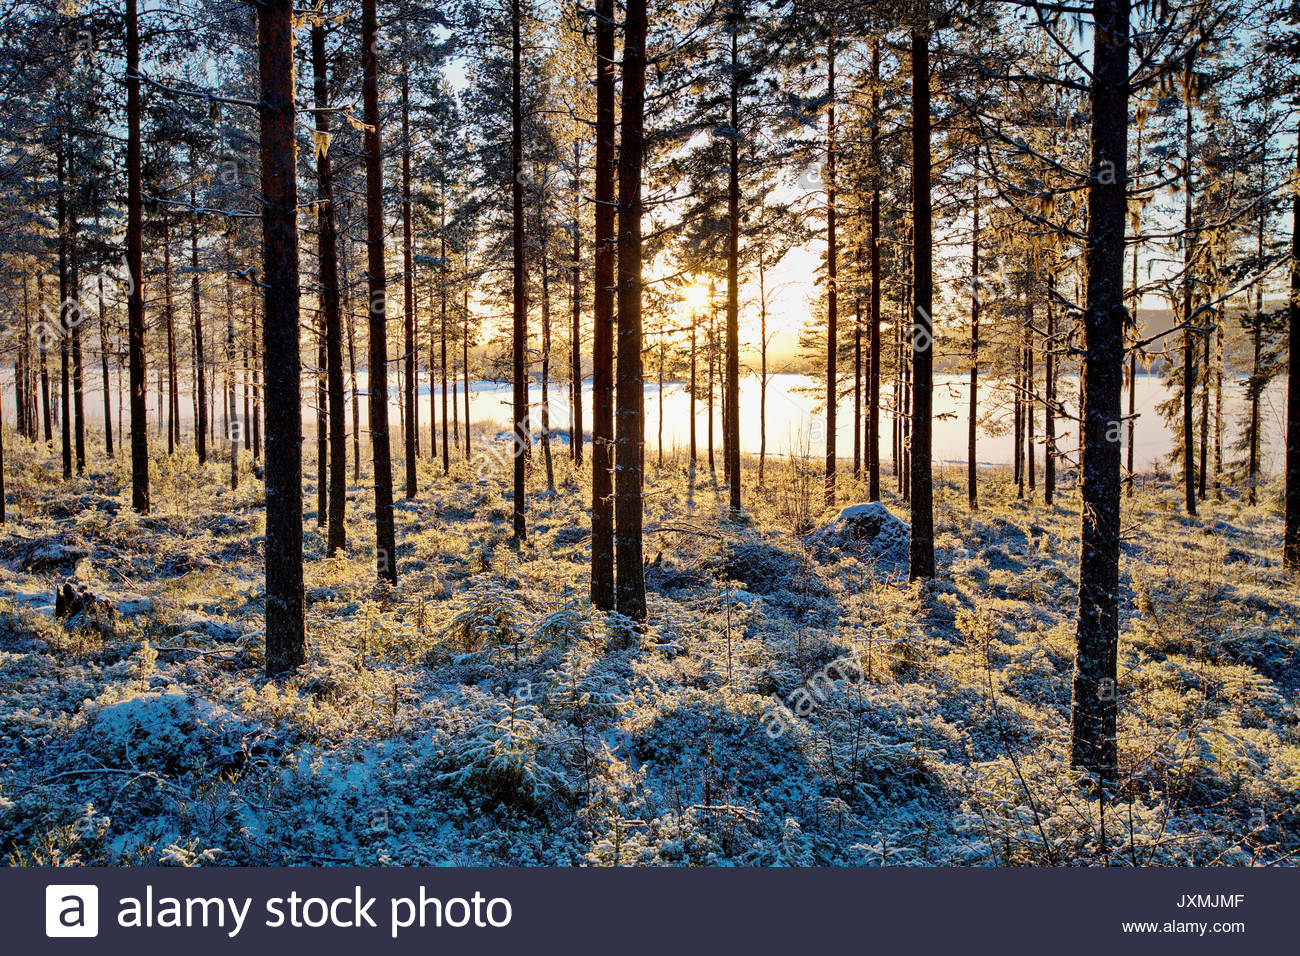 A pine forest is illuminated by the low winter sun at the shore of a frozen lake. - Stock Image